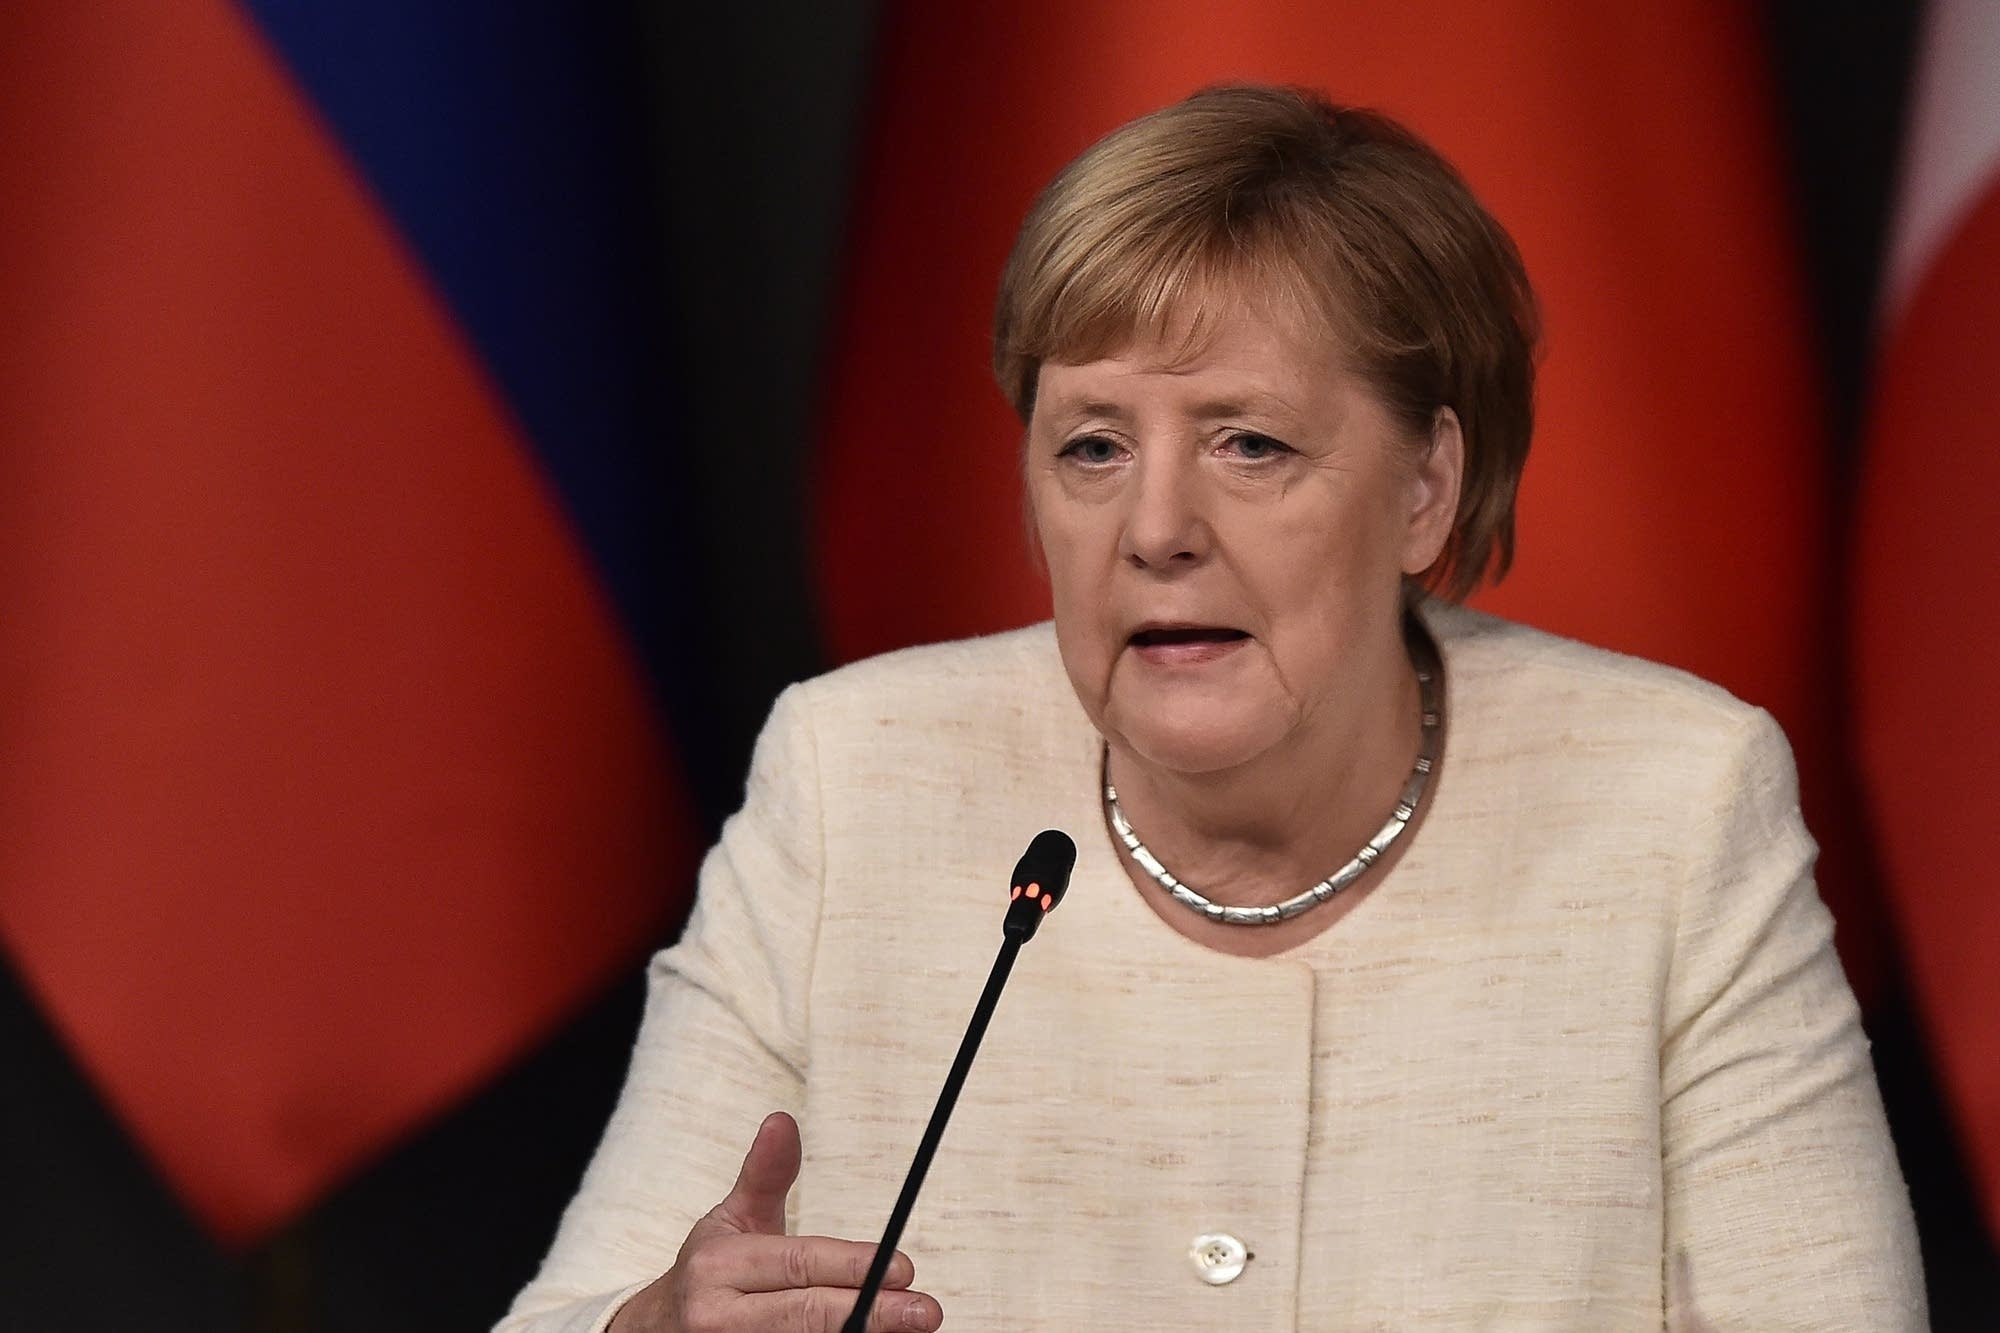 German Chancellor Angela Merkel attends a conference.